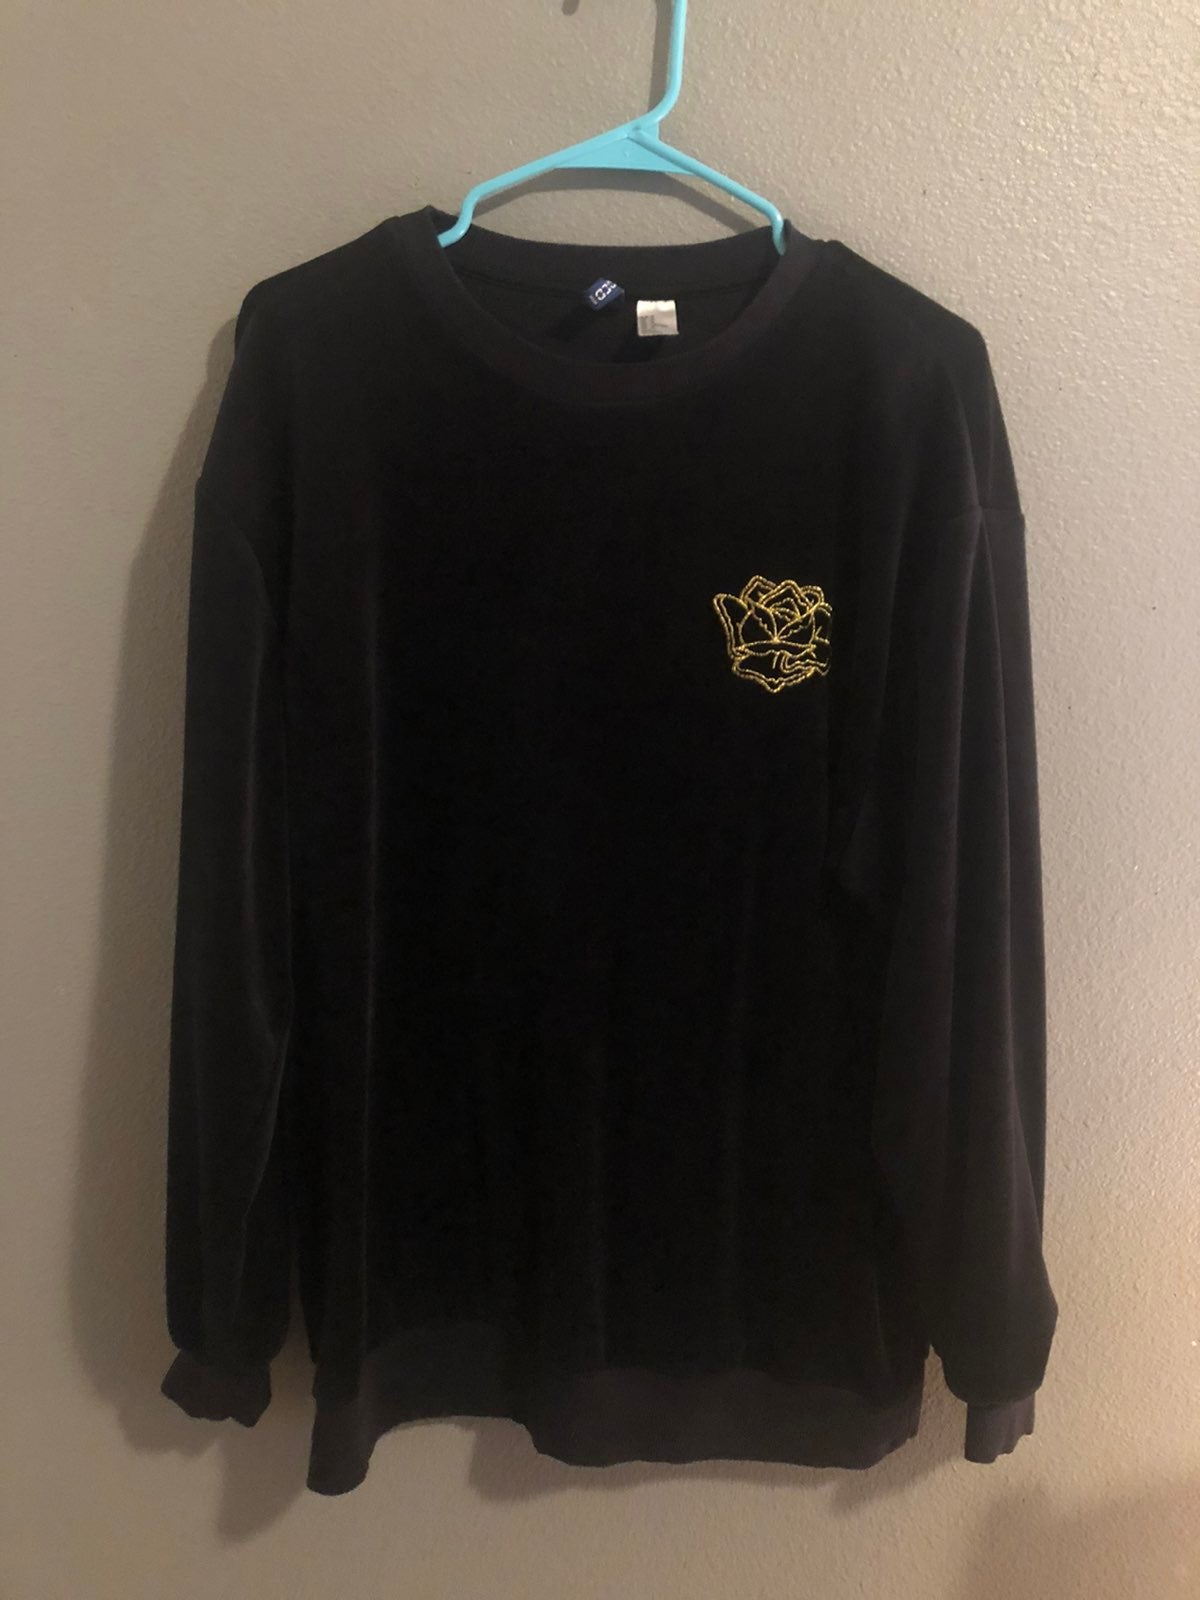 H&M divided Velvet long sleeve shirt